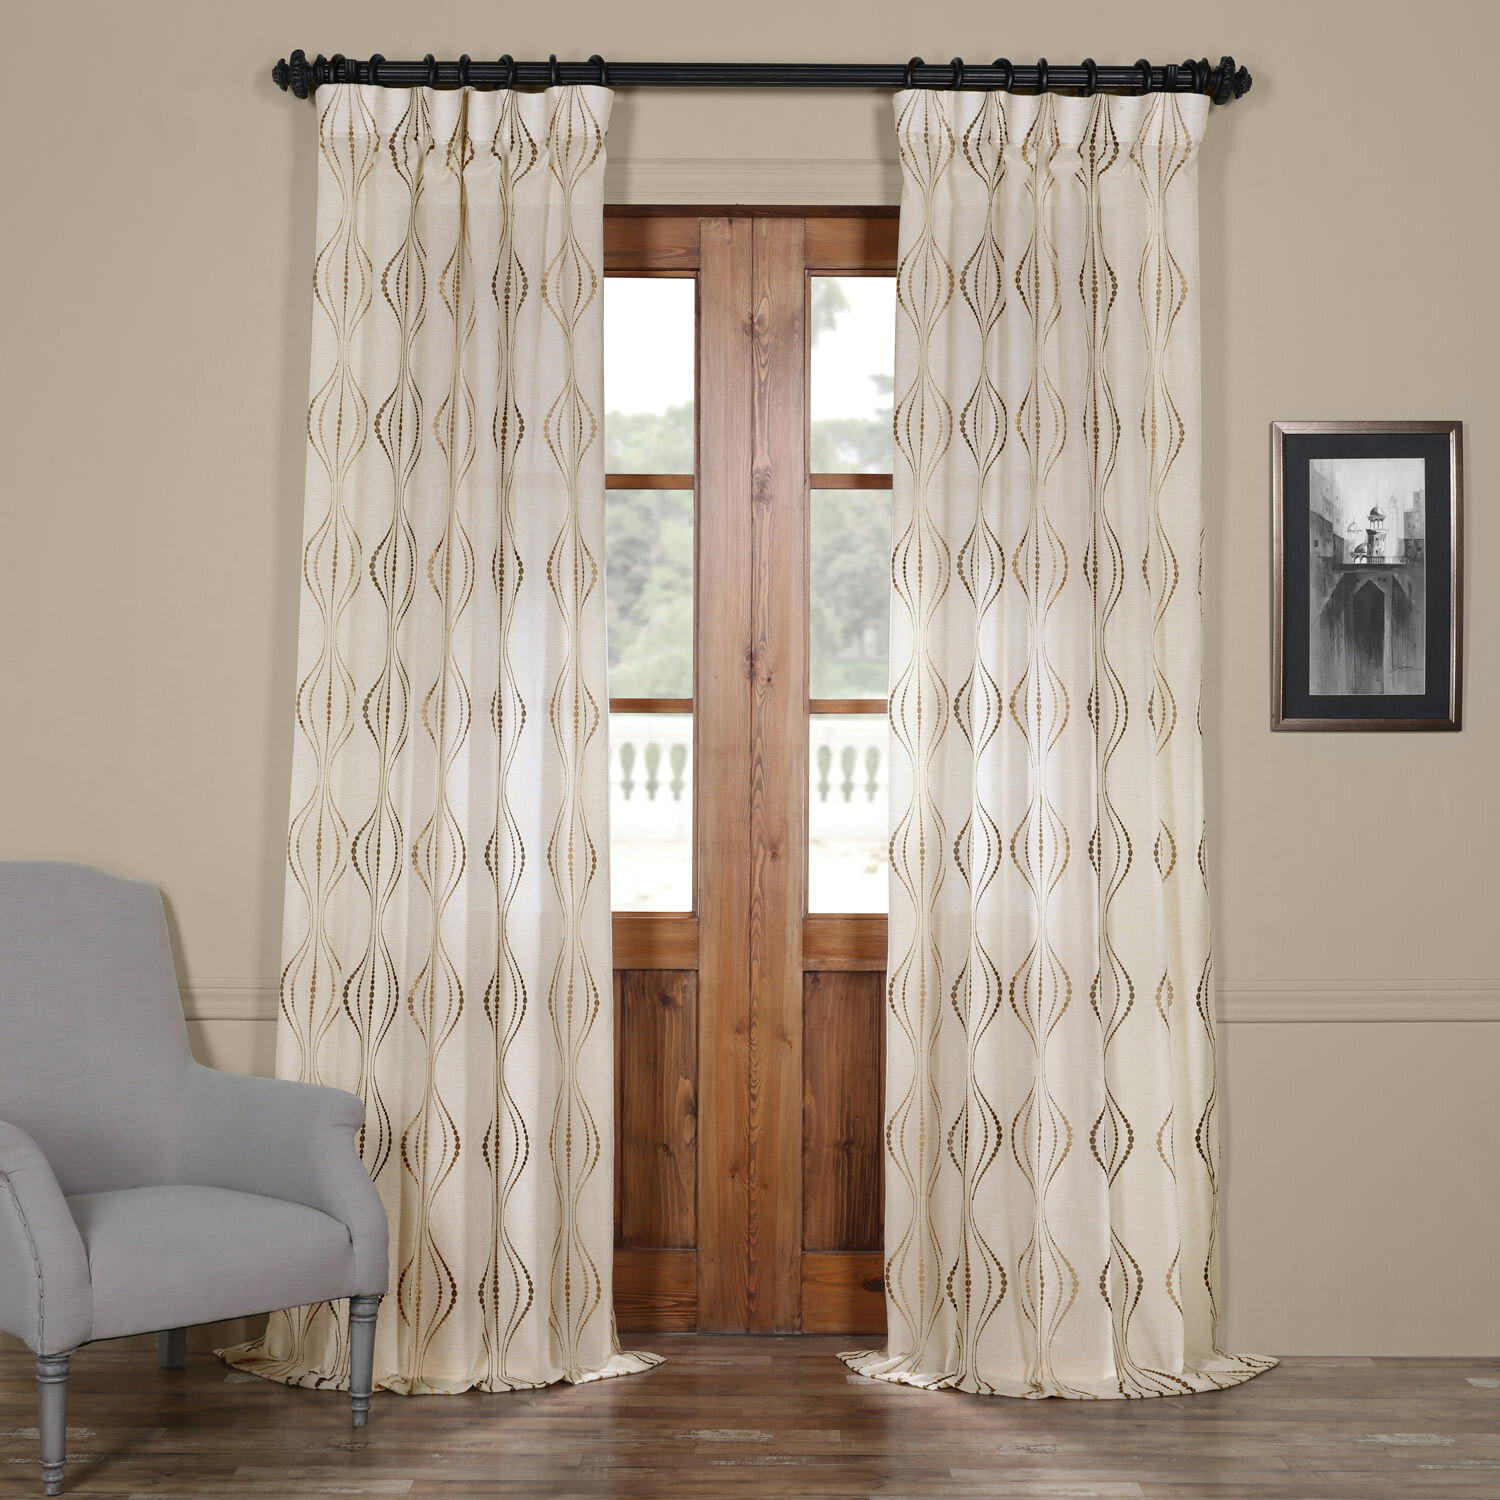 Whitner Embroidered Geometric Sheer Rod Pocket Curtain Panel Regarding Rod Pocket Curtain Panels (View 20 of 20)